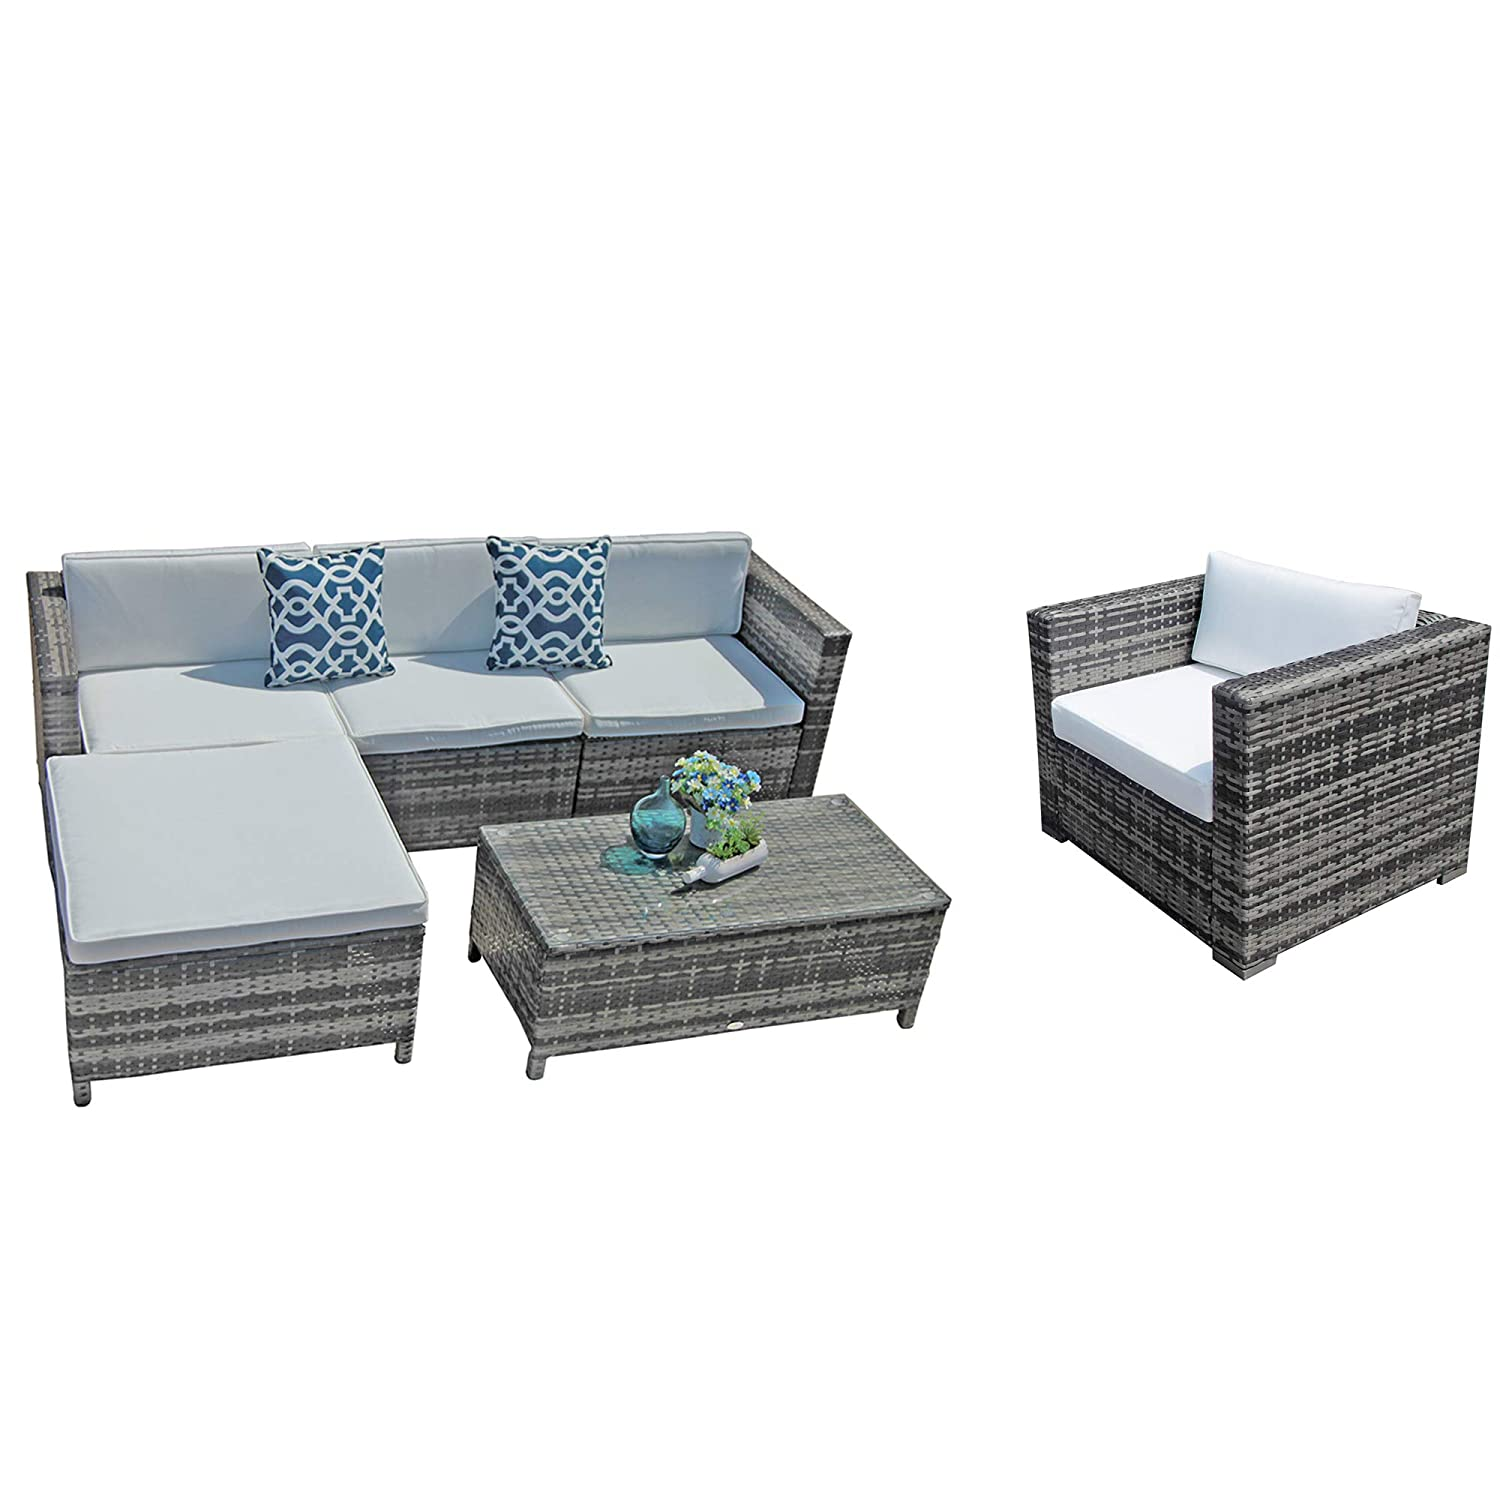 Patiorama Outdoor Sectional Furniture,6 Piece Patio Sectional Sofa Set with Grey Wicker White Cushions,Four Blue Throw Pillows